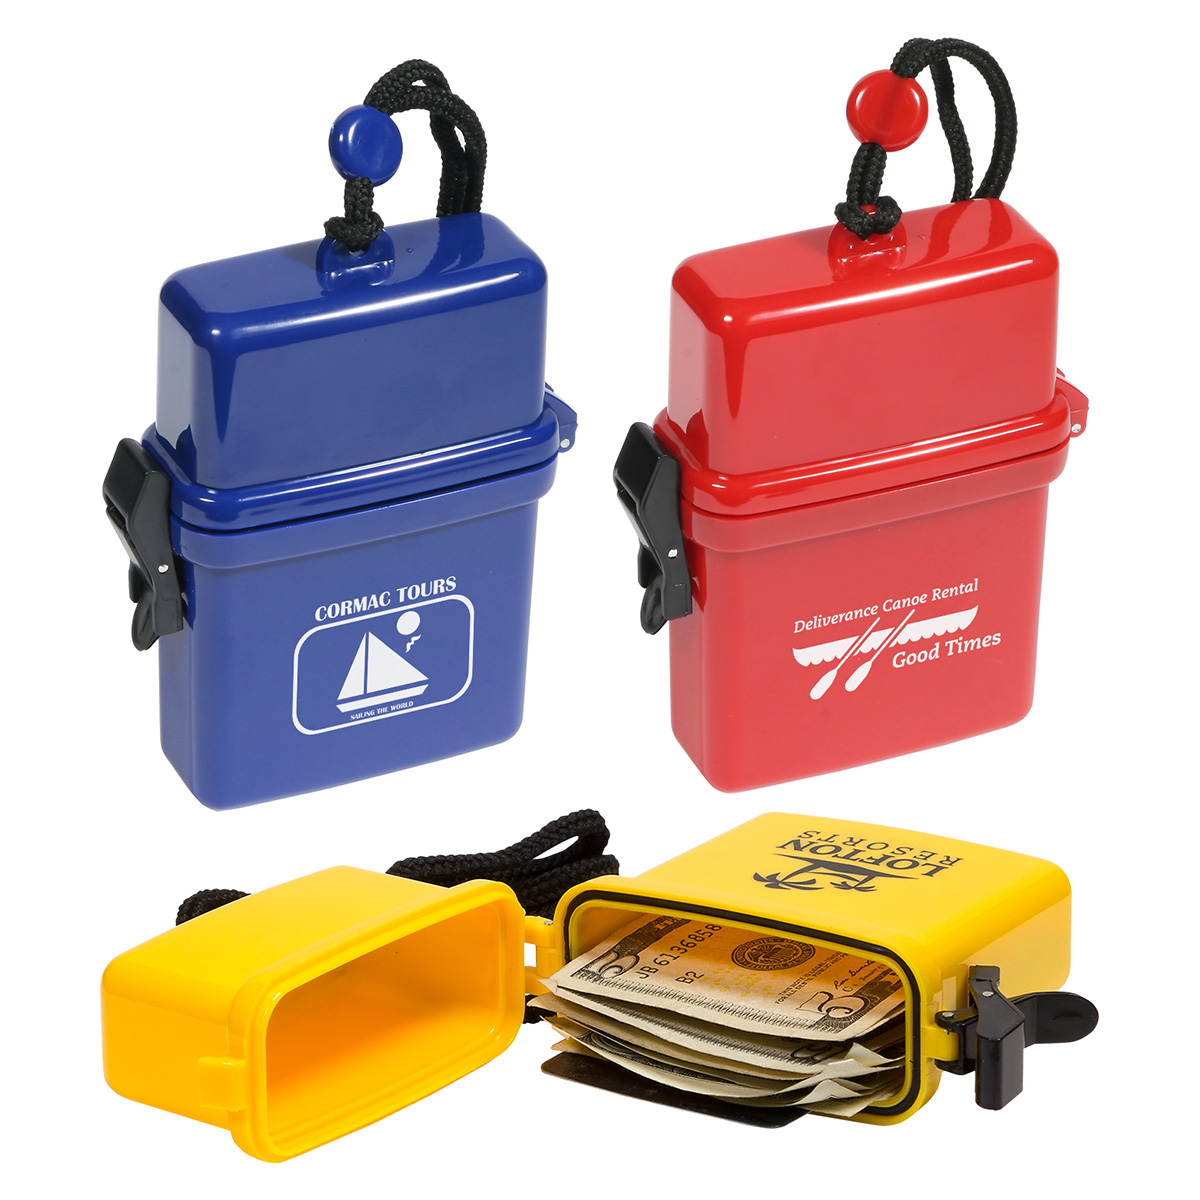 Waterproof Storage Case, WOR-WP12 - 1 Colour Imprint